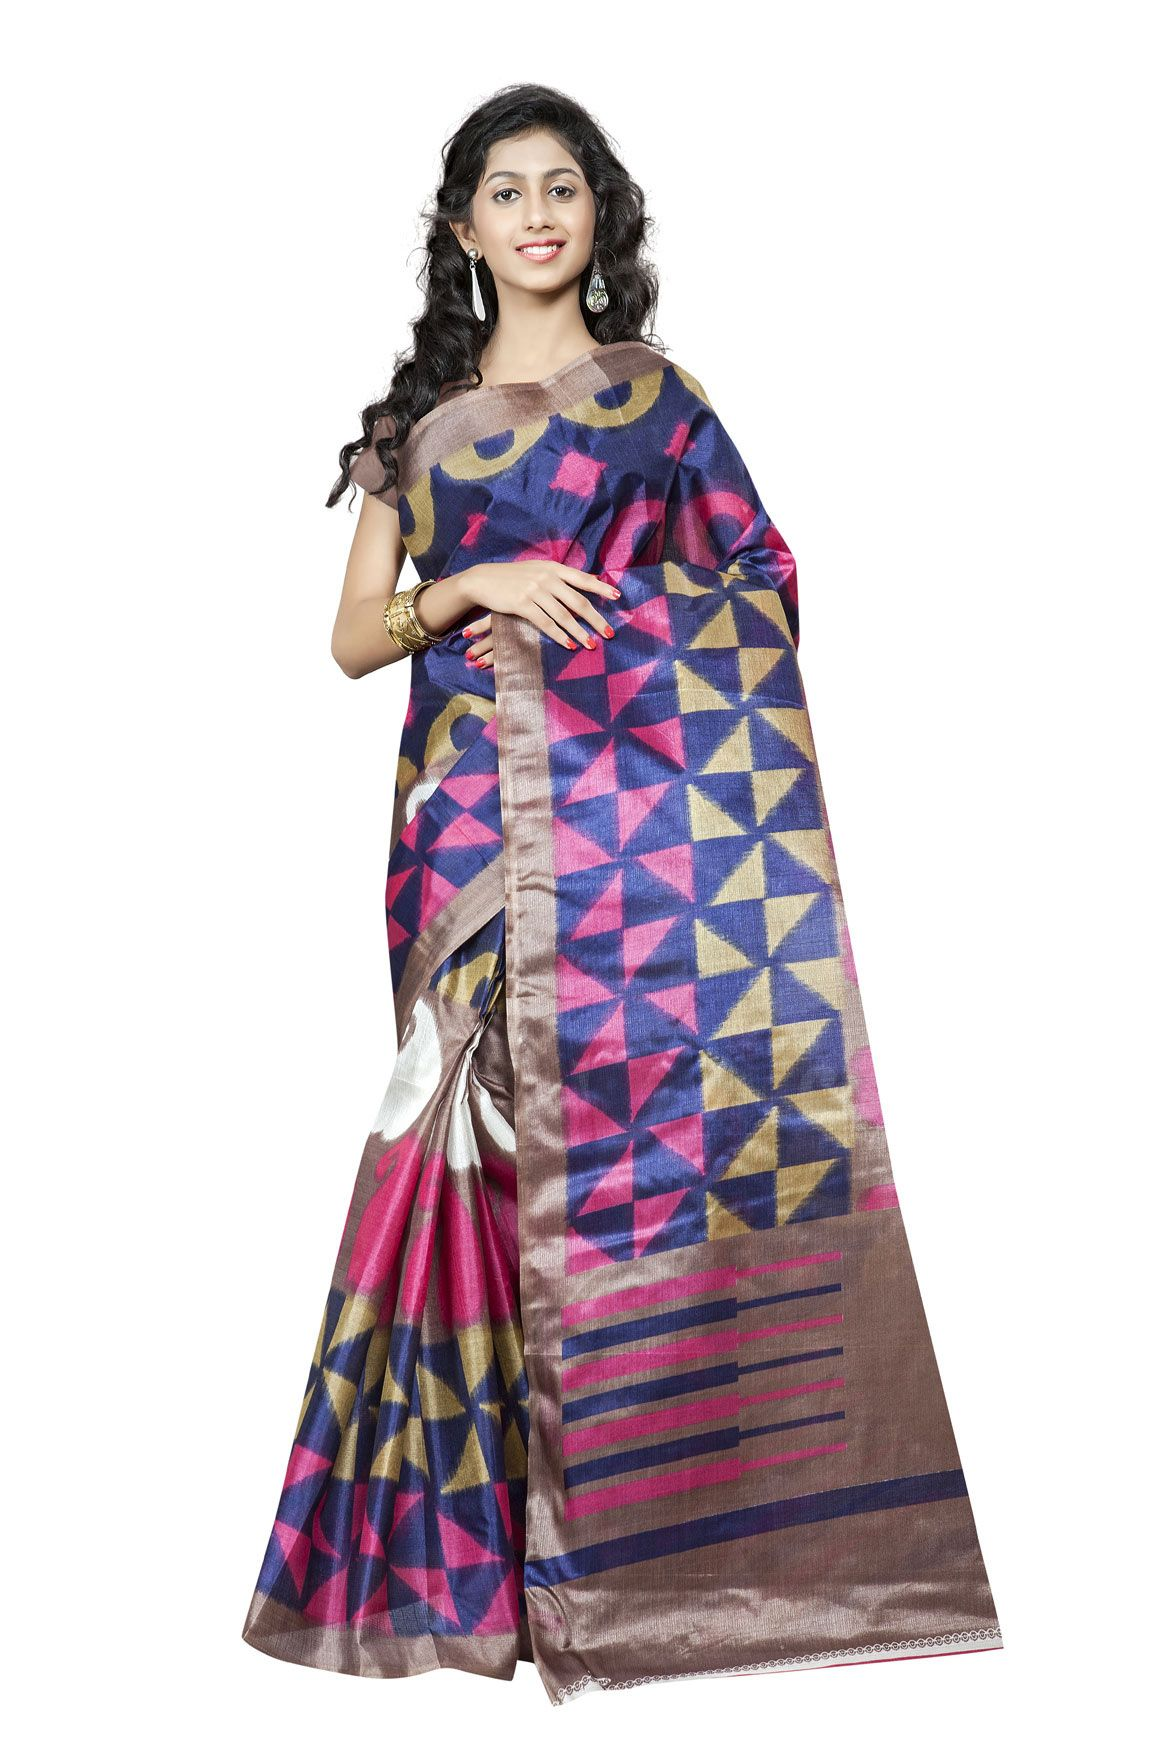 http://www.thatsend.com/shopping/lp/fvp/TESG229142/qf/color[]pink  Pink Silk Casual Saree Apparel Pattern Printed. Work Print. Blouse Piece Yes. Occasion Festive, Sangeet. Top Color Ivory.